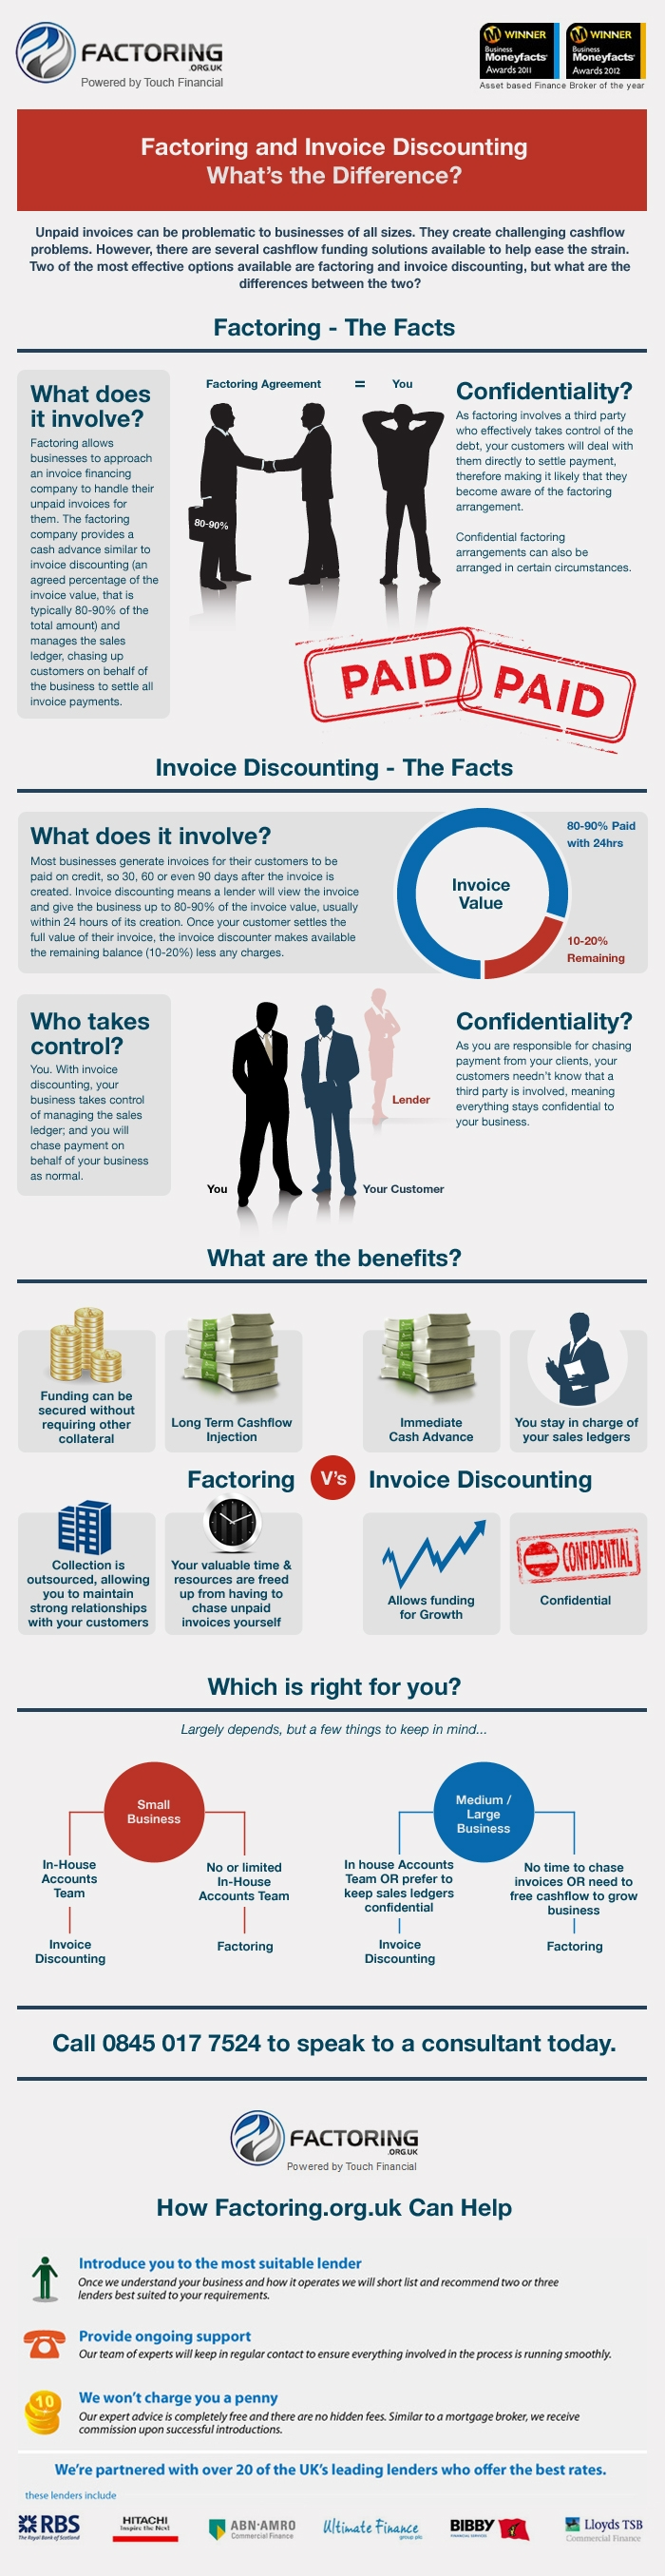 factoring vs invoice discounting invoice discounting vs factoring